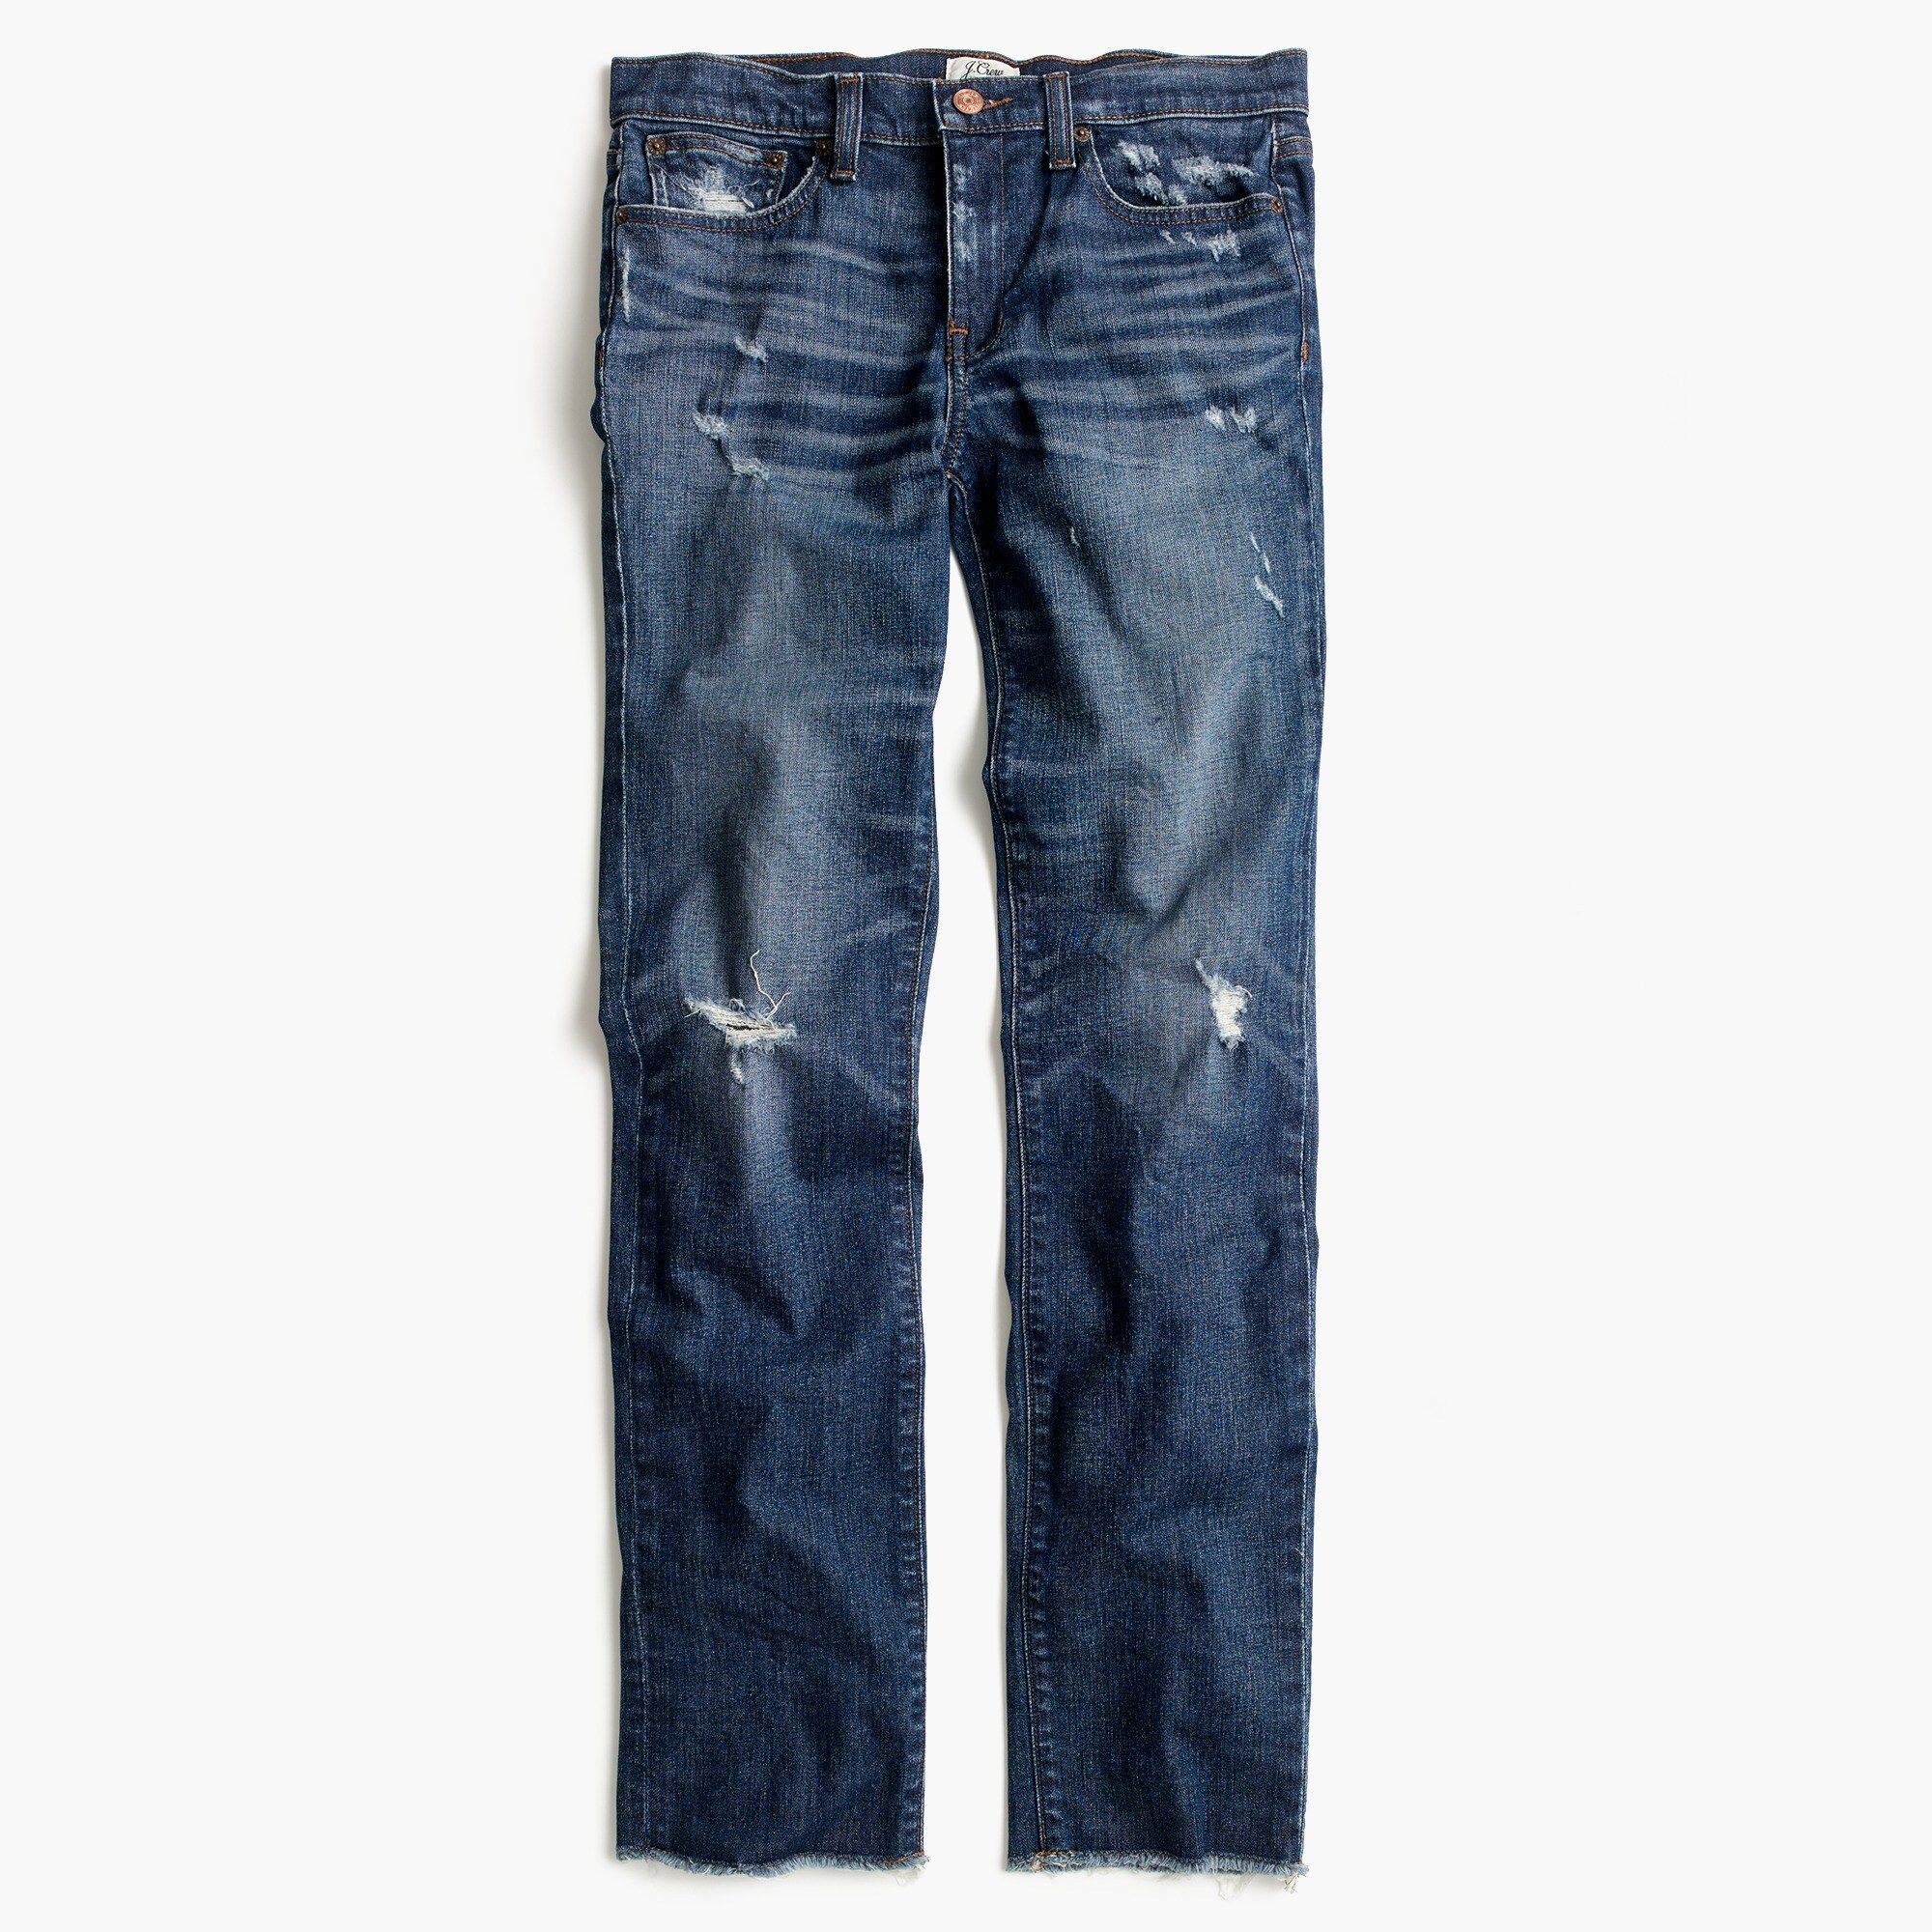 Image 2 for Tall slim boyfriend jean in Silverwood wash